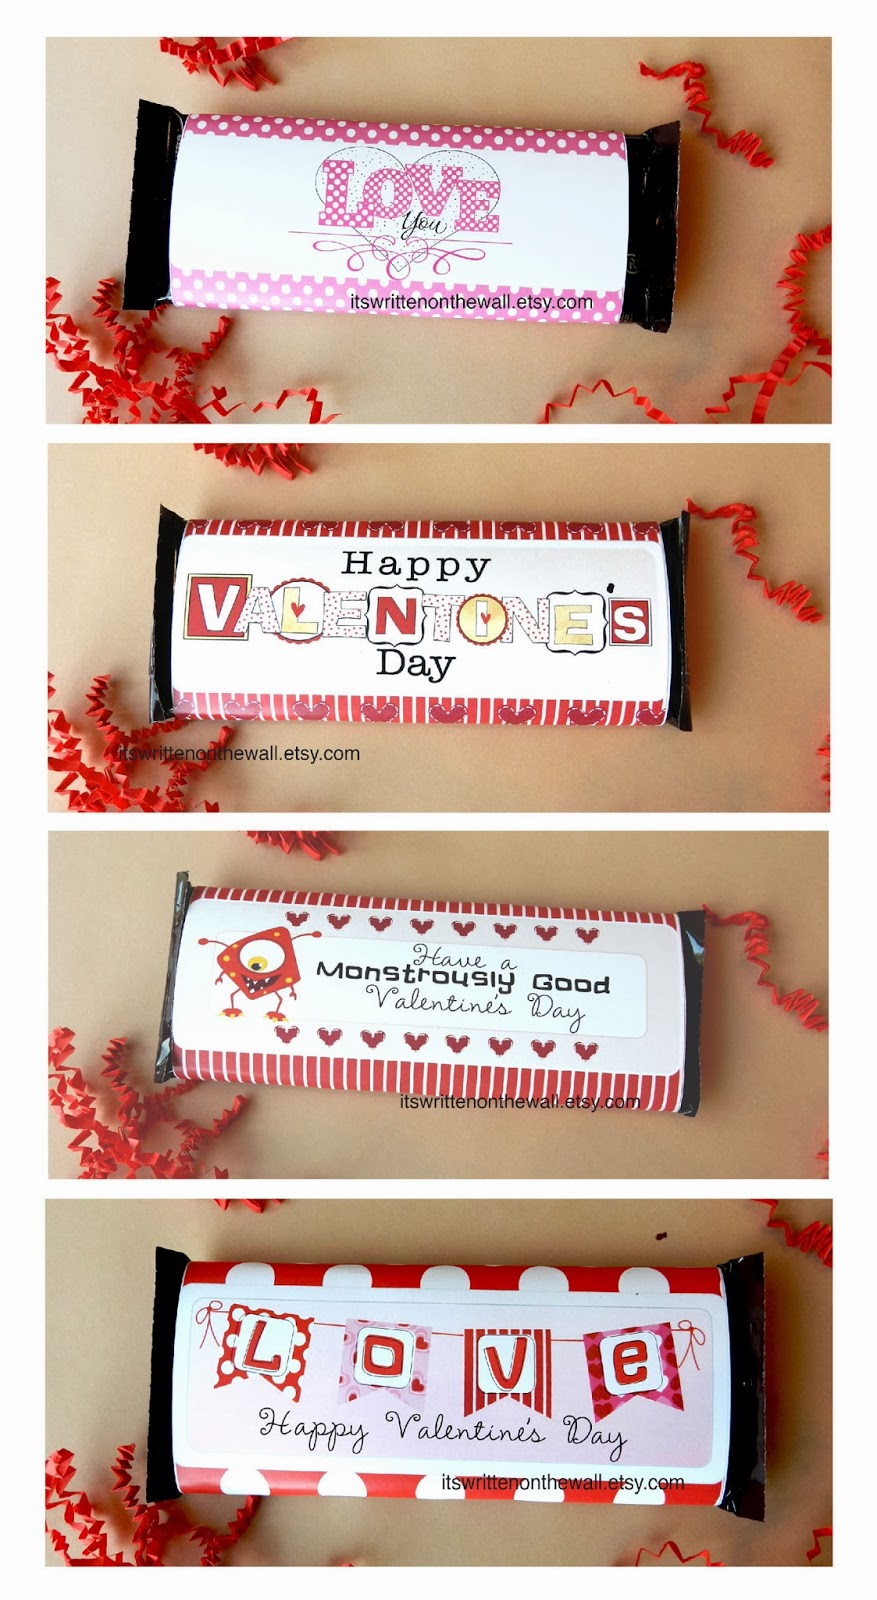 Hershey Bar, Candy Bar Wrappers, Candy Bars, Valentines Day, Favors, Valentine's Day Diy, Toffee Bars, Presents, Chocolate Candy Bars. Find this Pin and more on Valentine's Day Candy Bar Wrappers by Announce It!.